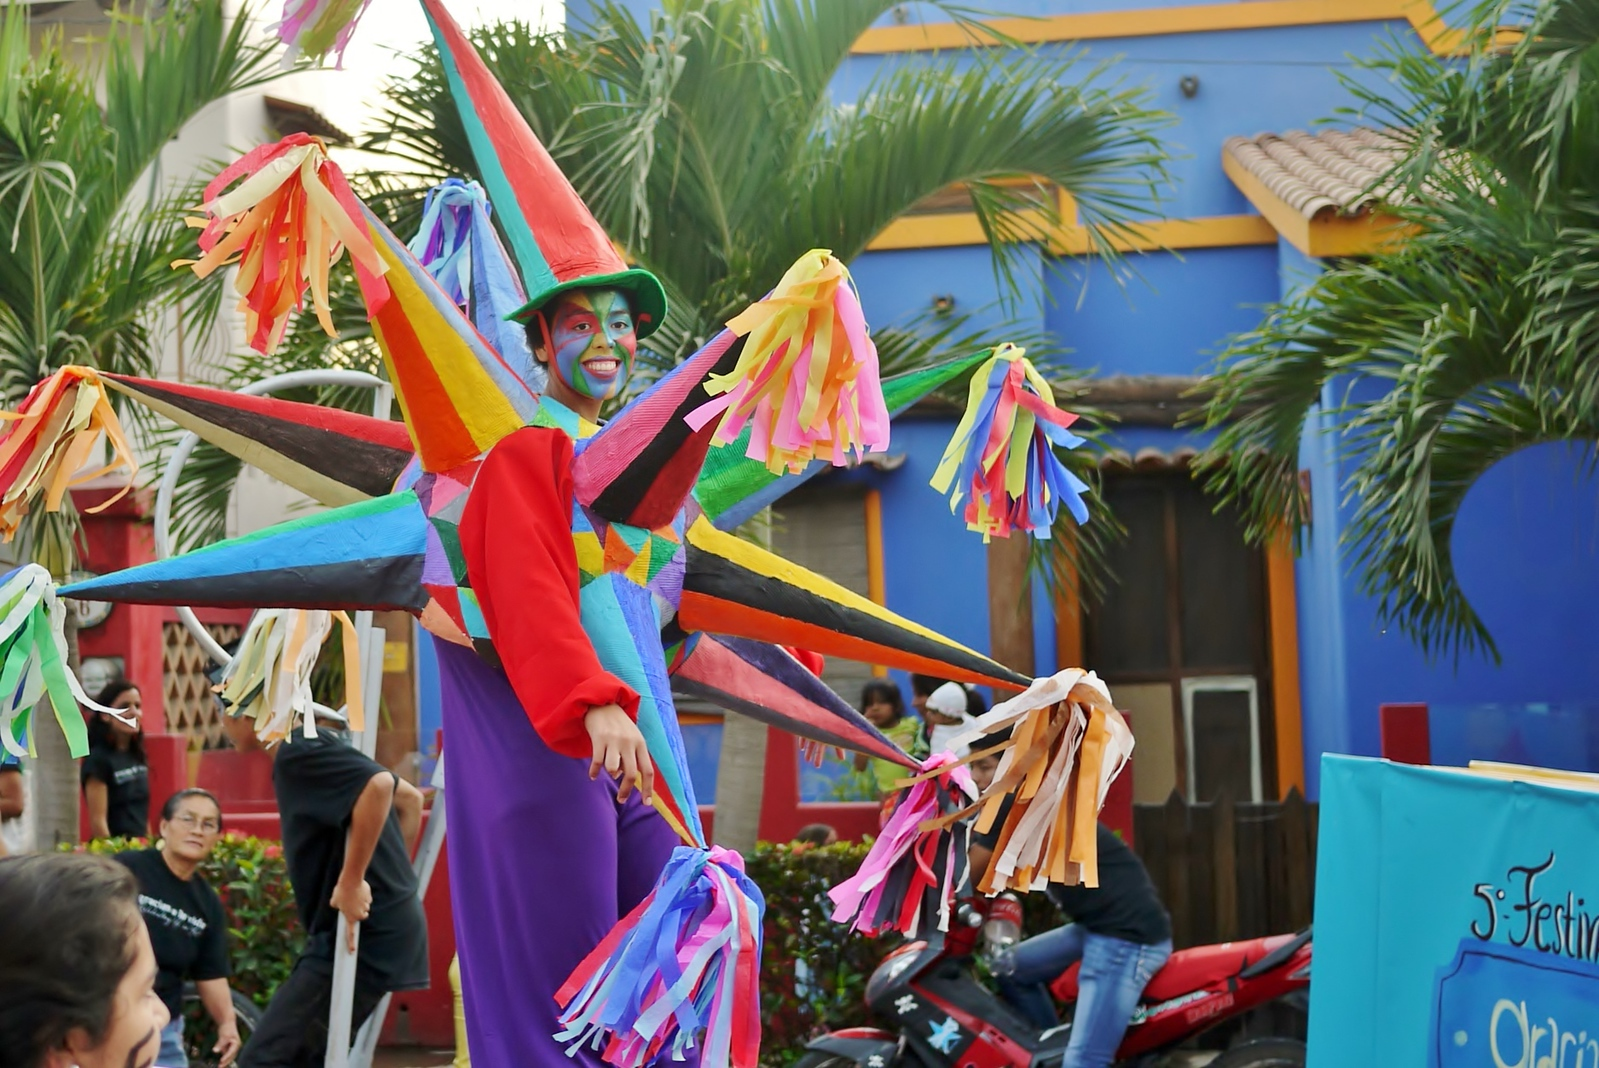 Fun characters showcased their circus skills in the annual Children's Festival parade organized by the town's community center.